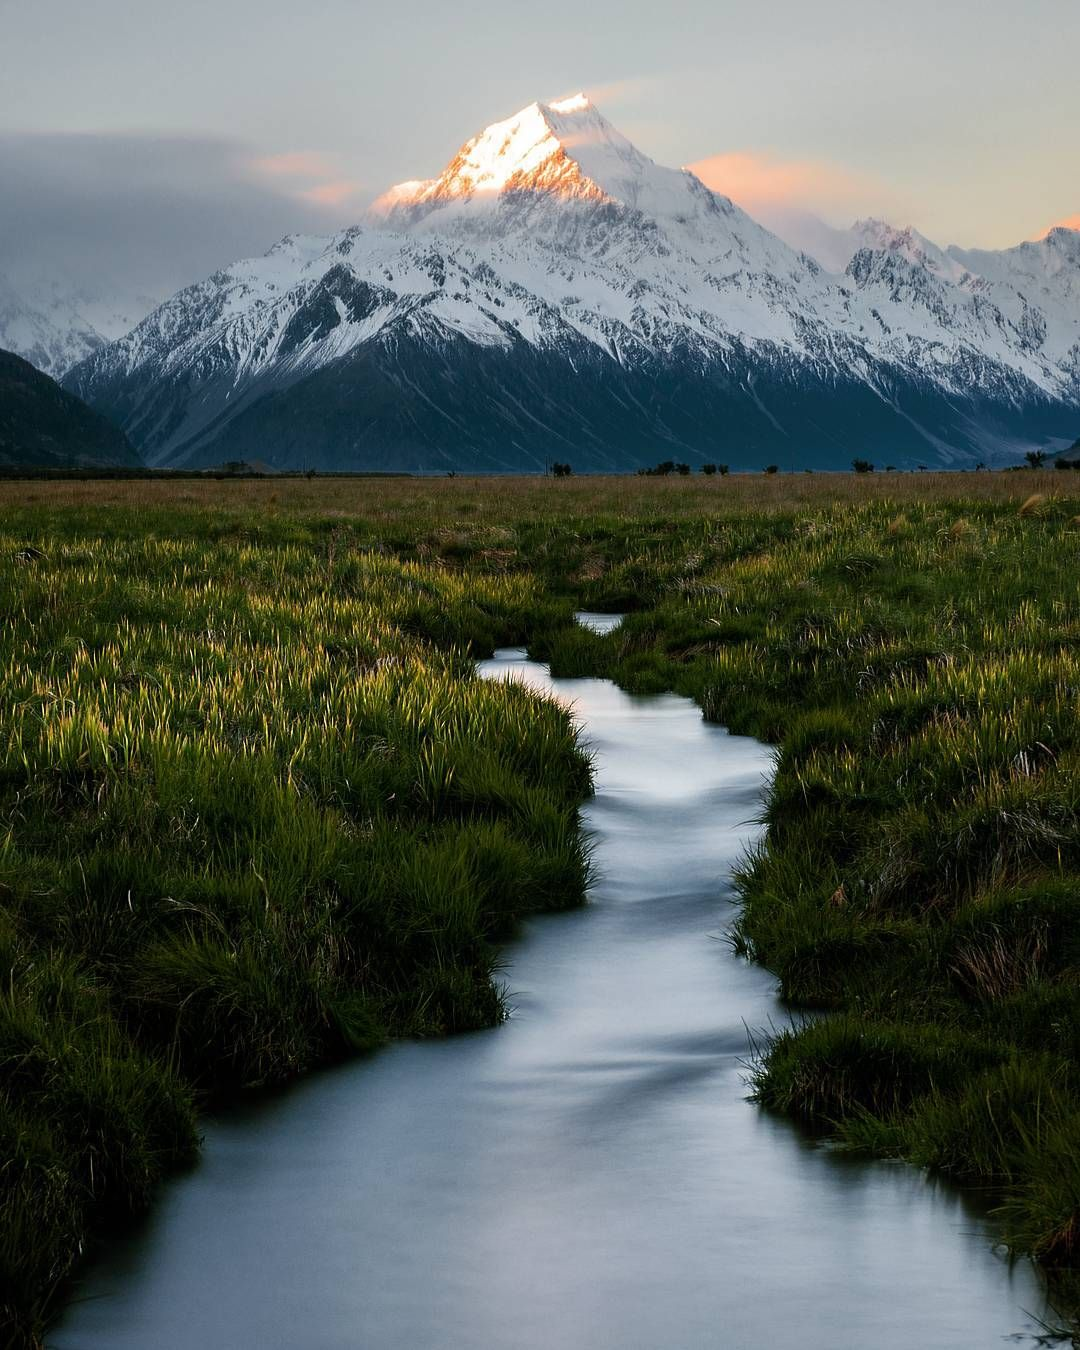 The Striking Nature Landscapes of New Zealand by Sam Deuchrass #scenery